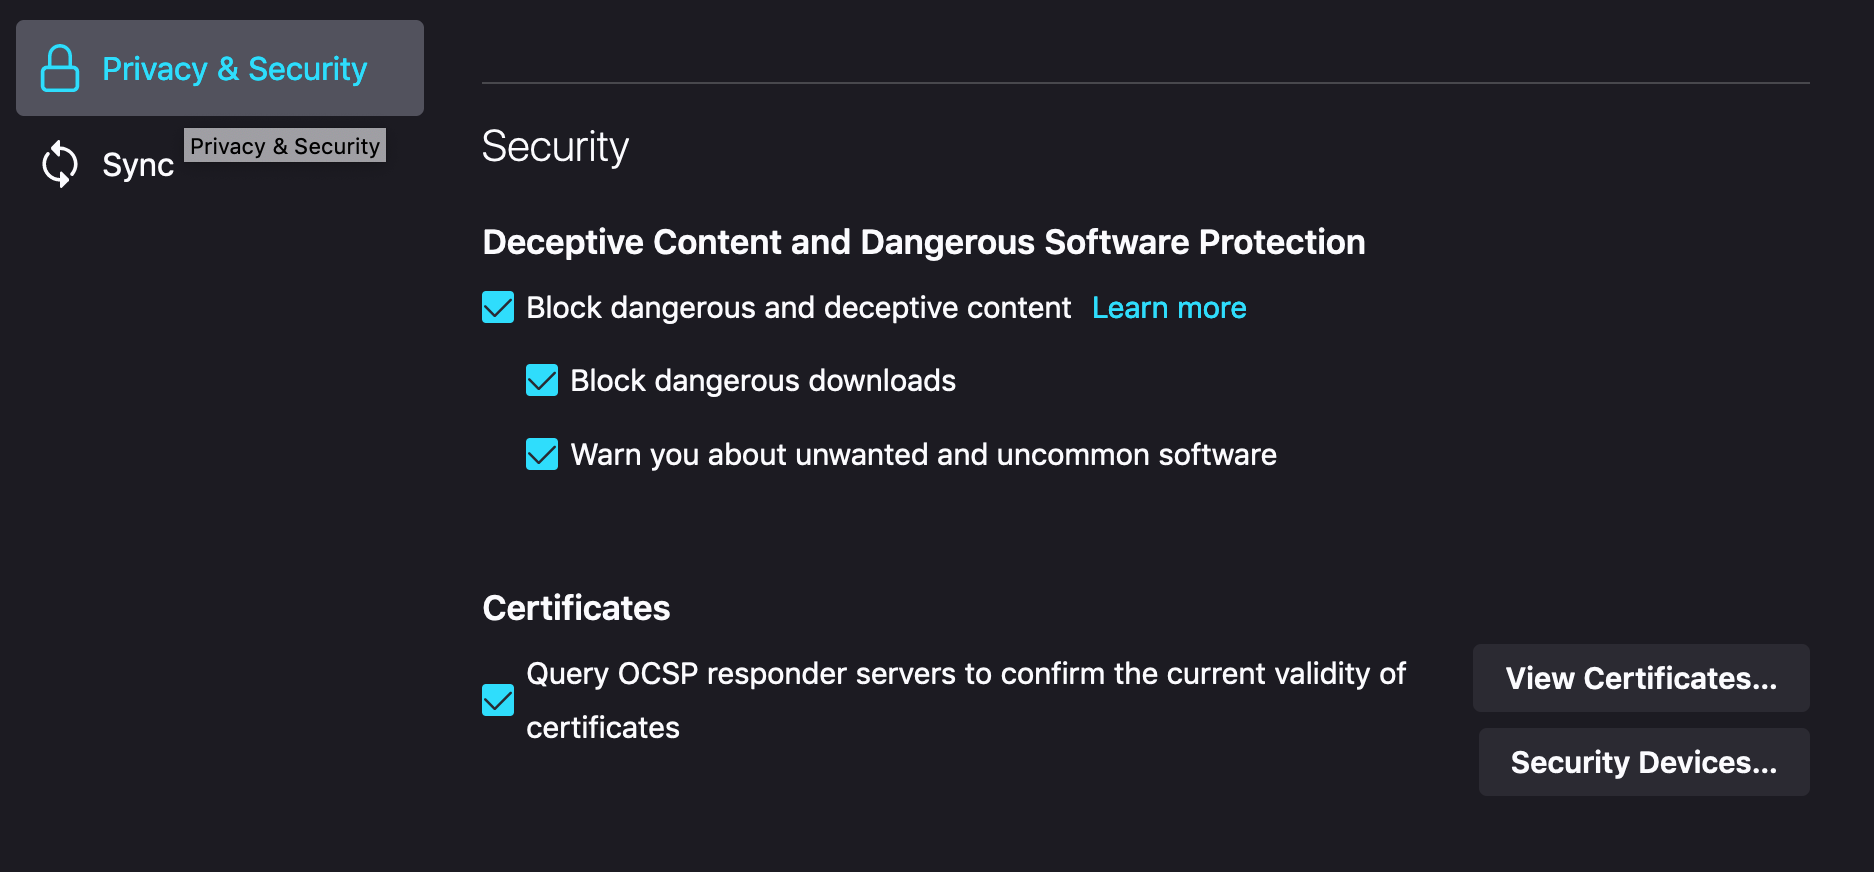 2_privacy_security_view_certificates